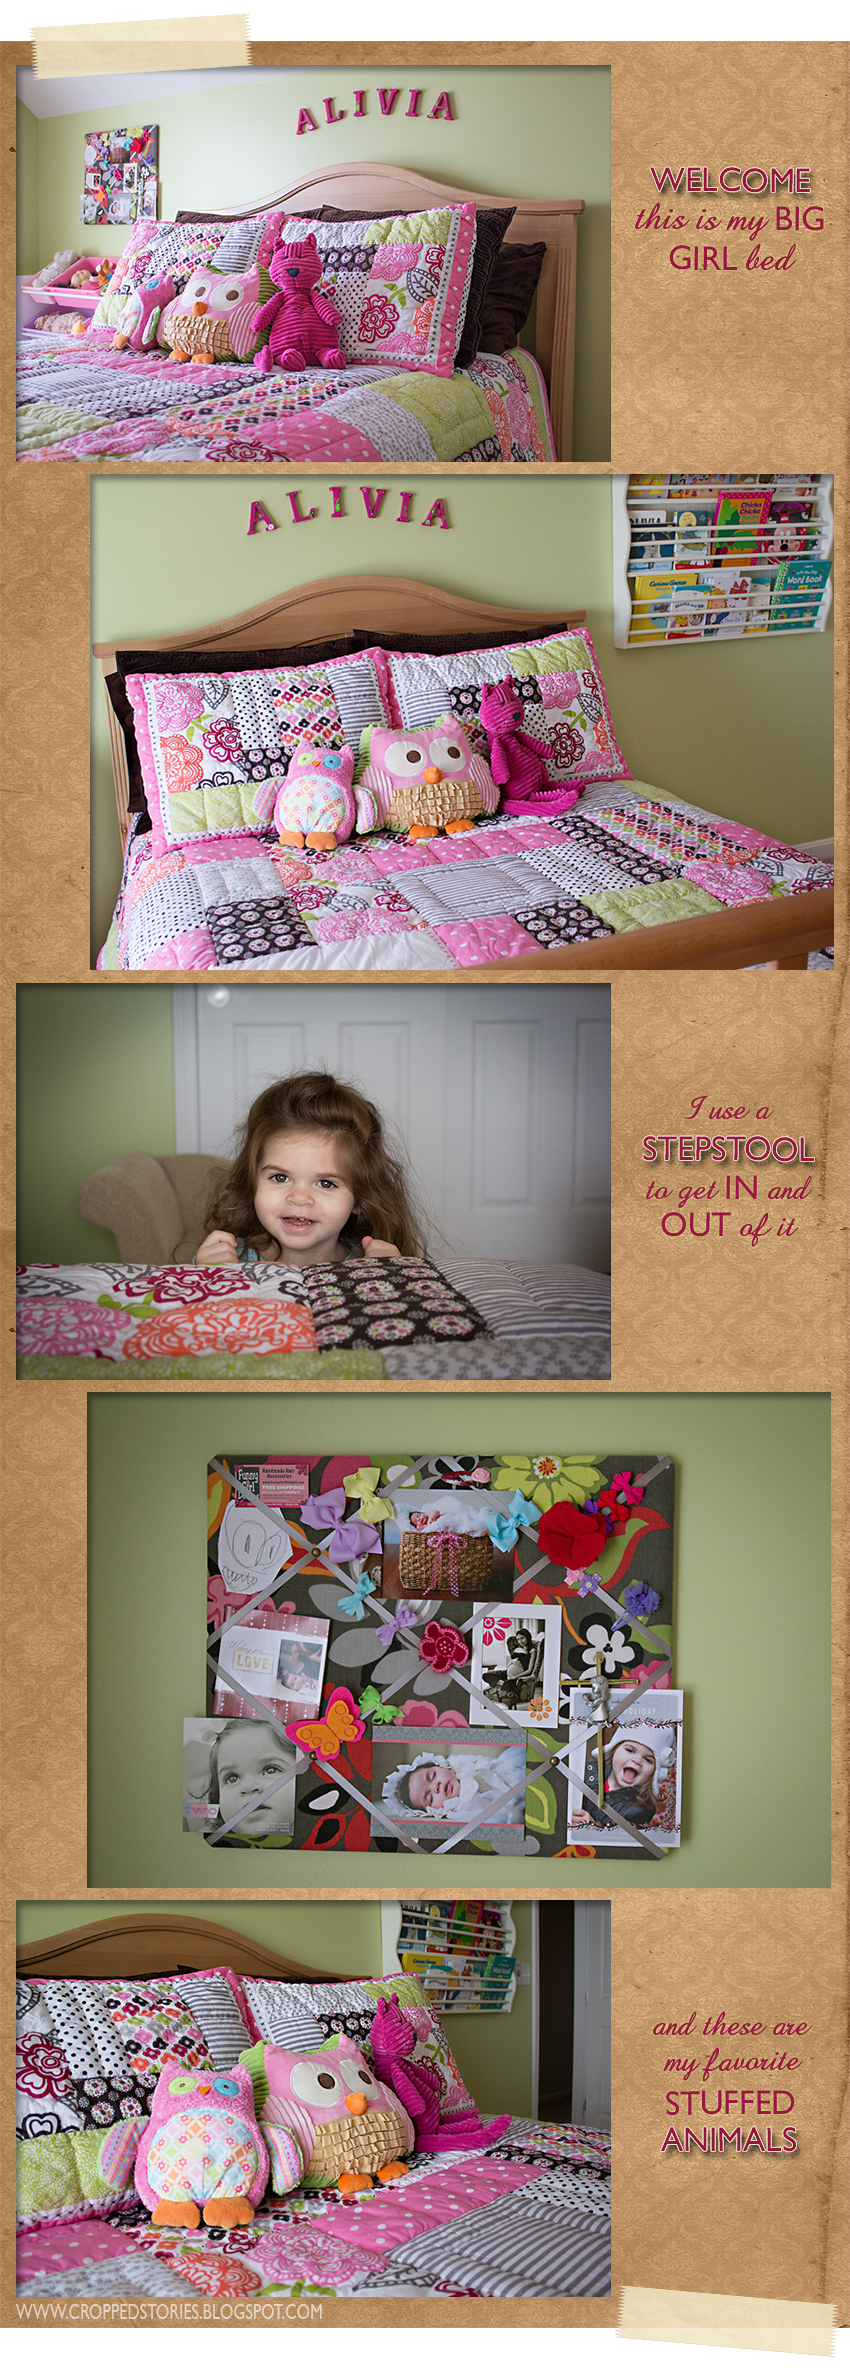 Big Girl Bedroom 032713